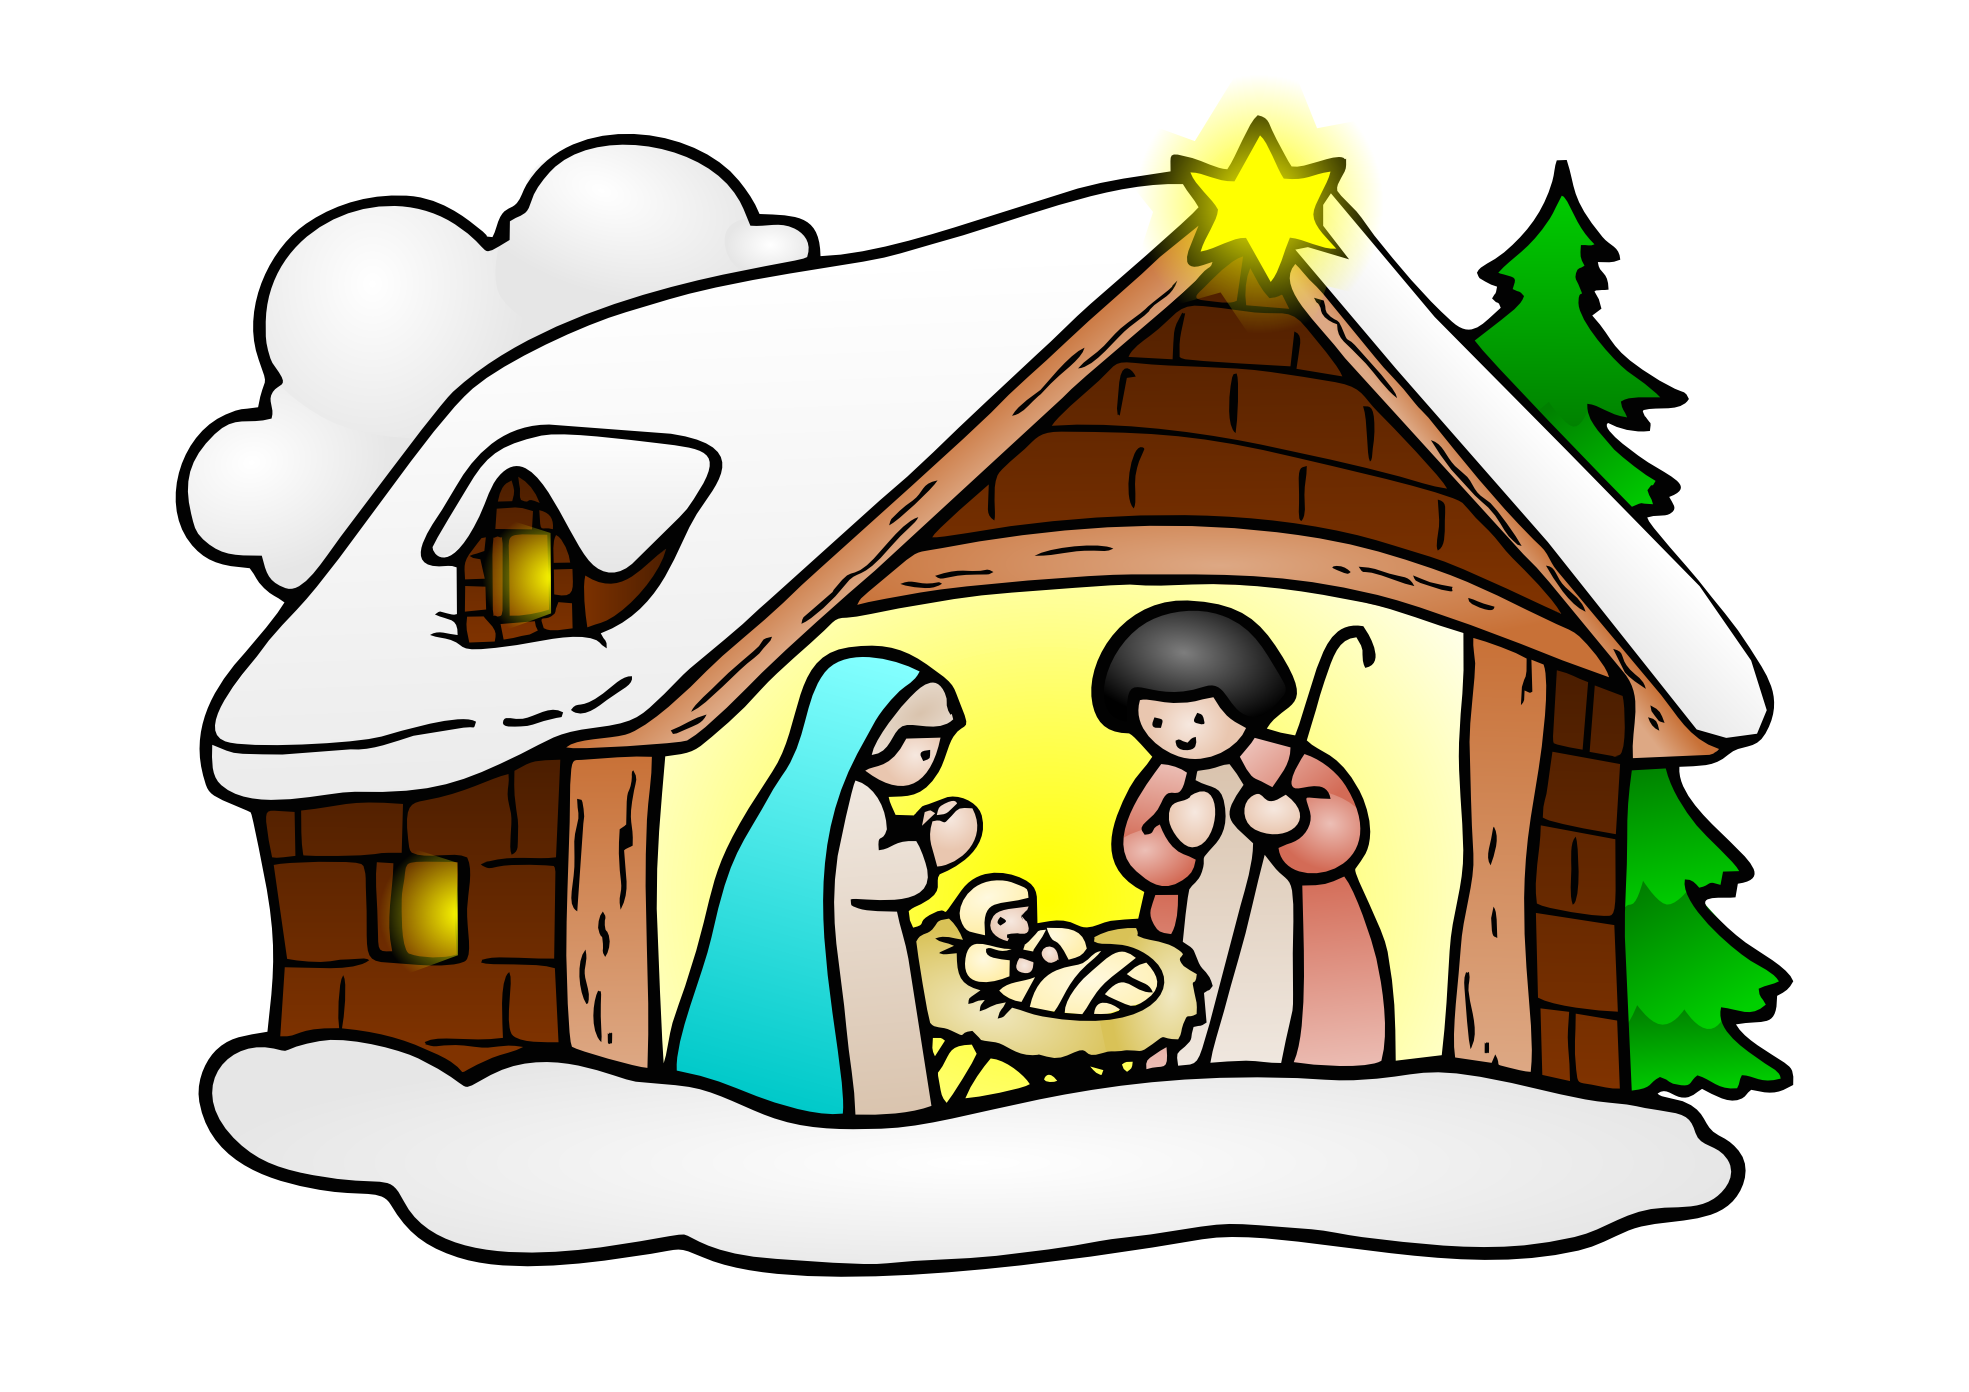 Christmas clipart jesus jpg black and white download 28+ Collection of Jesus Clip Art Christmas | High quality, free ... jpg black and white download